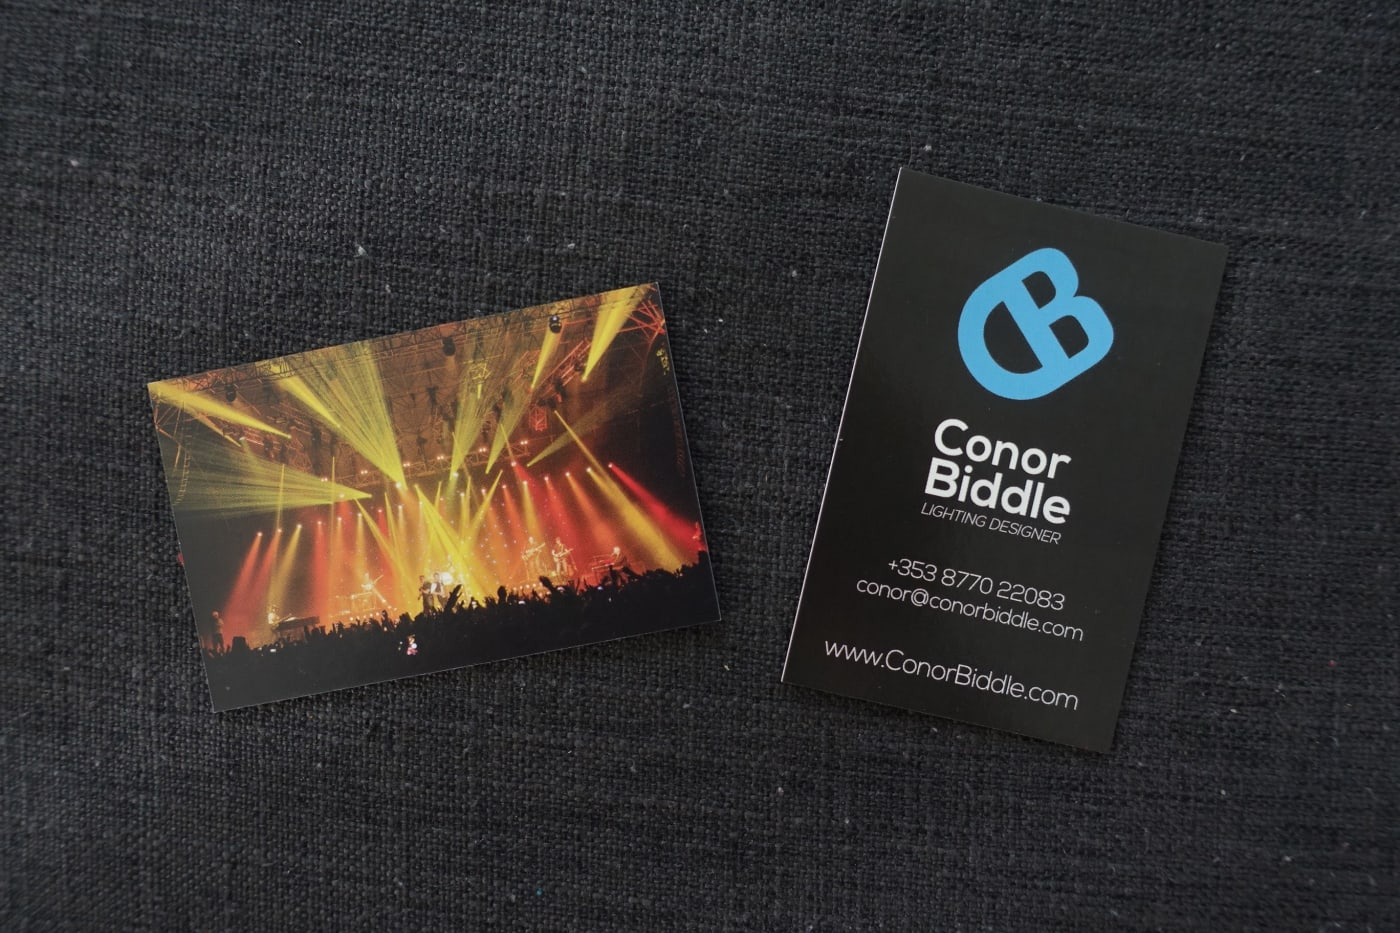 Conor Biddle Business Card by Sean Smyth - 2